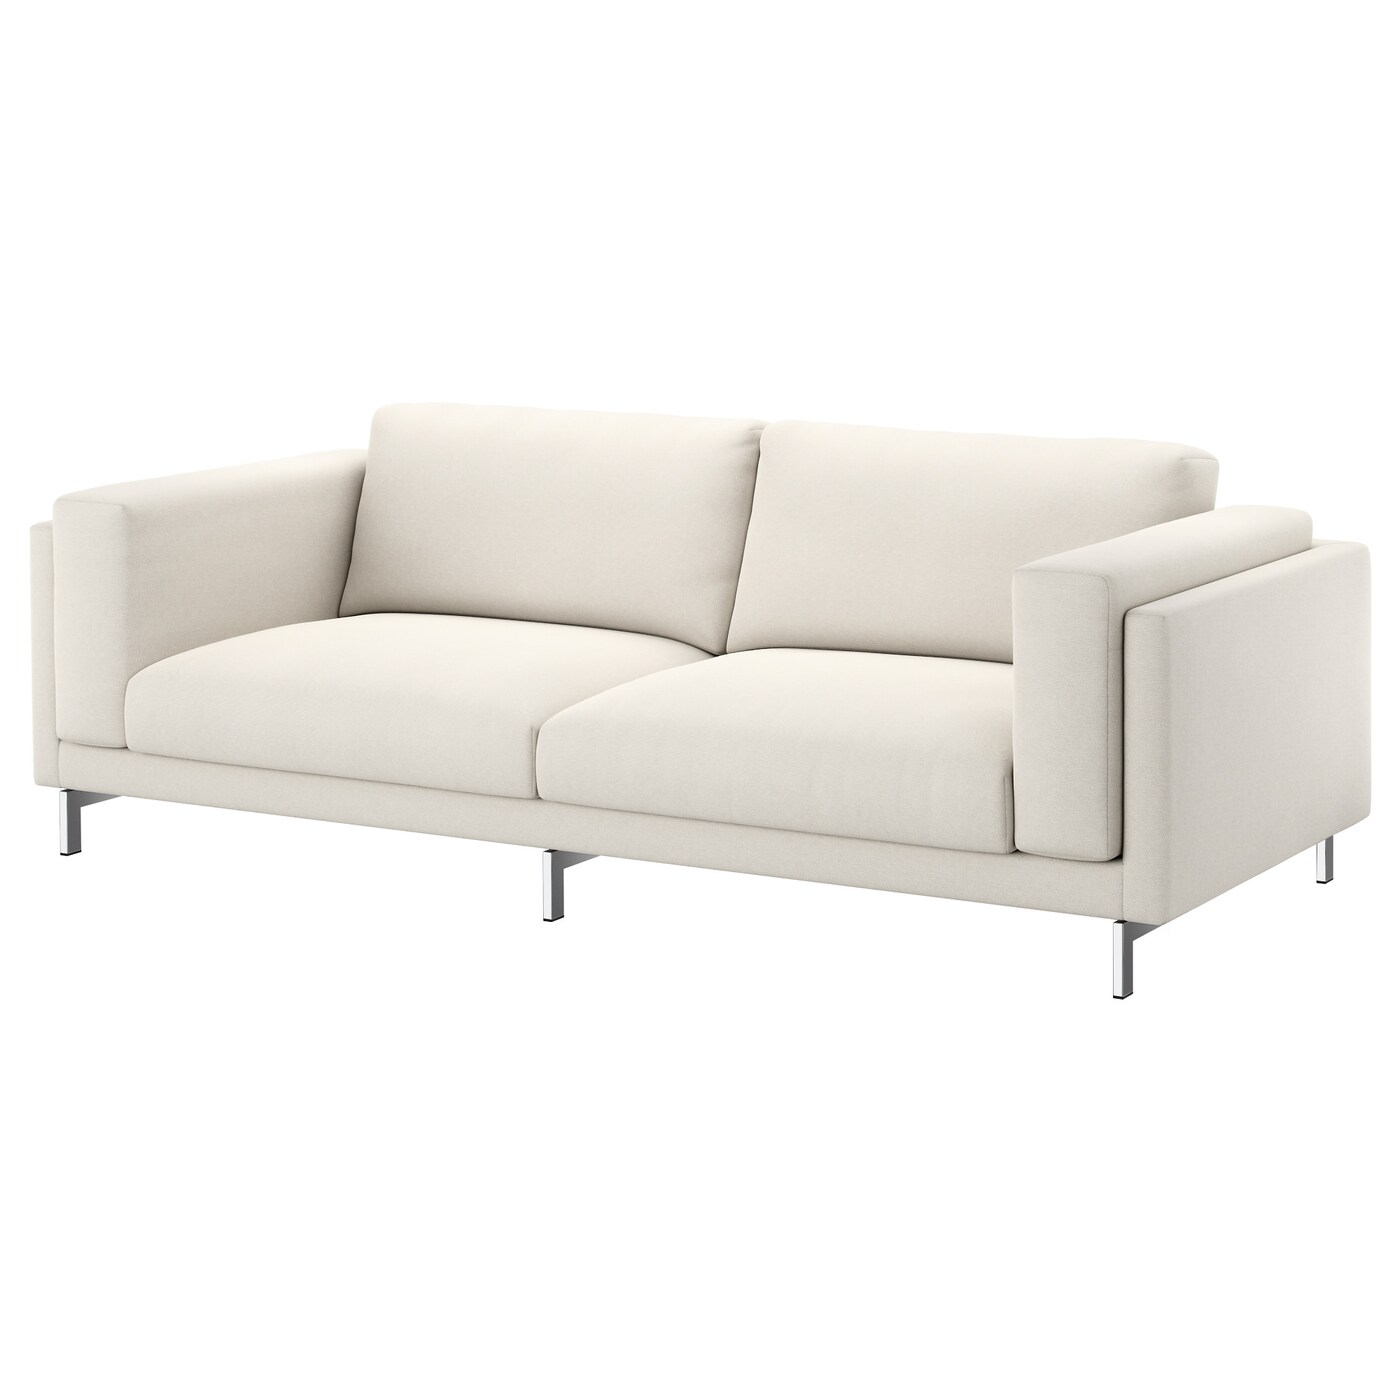 Ikea Sofa Nockeby Test Nockeby Three Seat Sofa Tallmyra Light Beige Chrome Plated